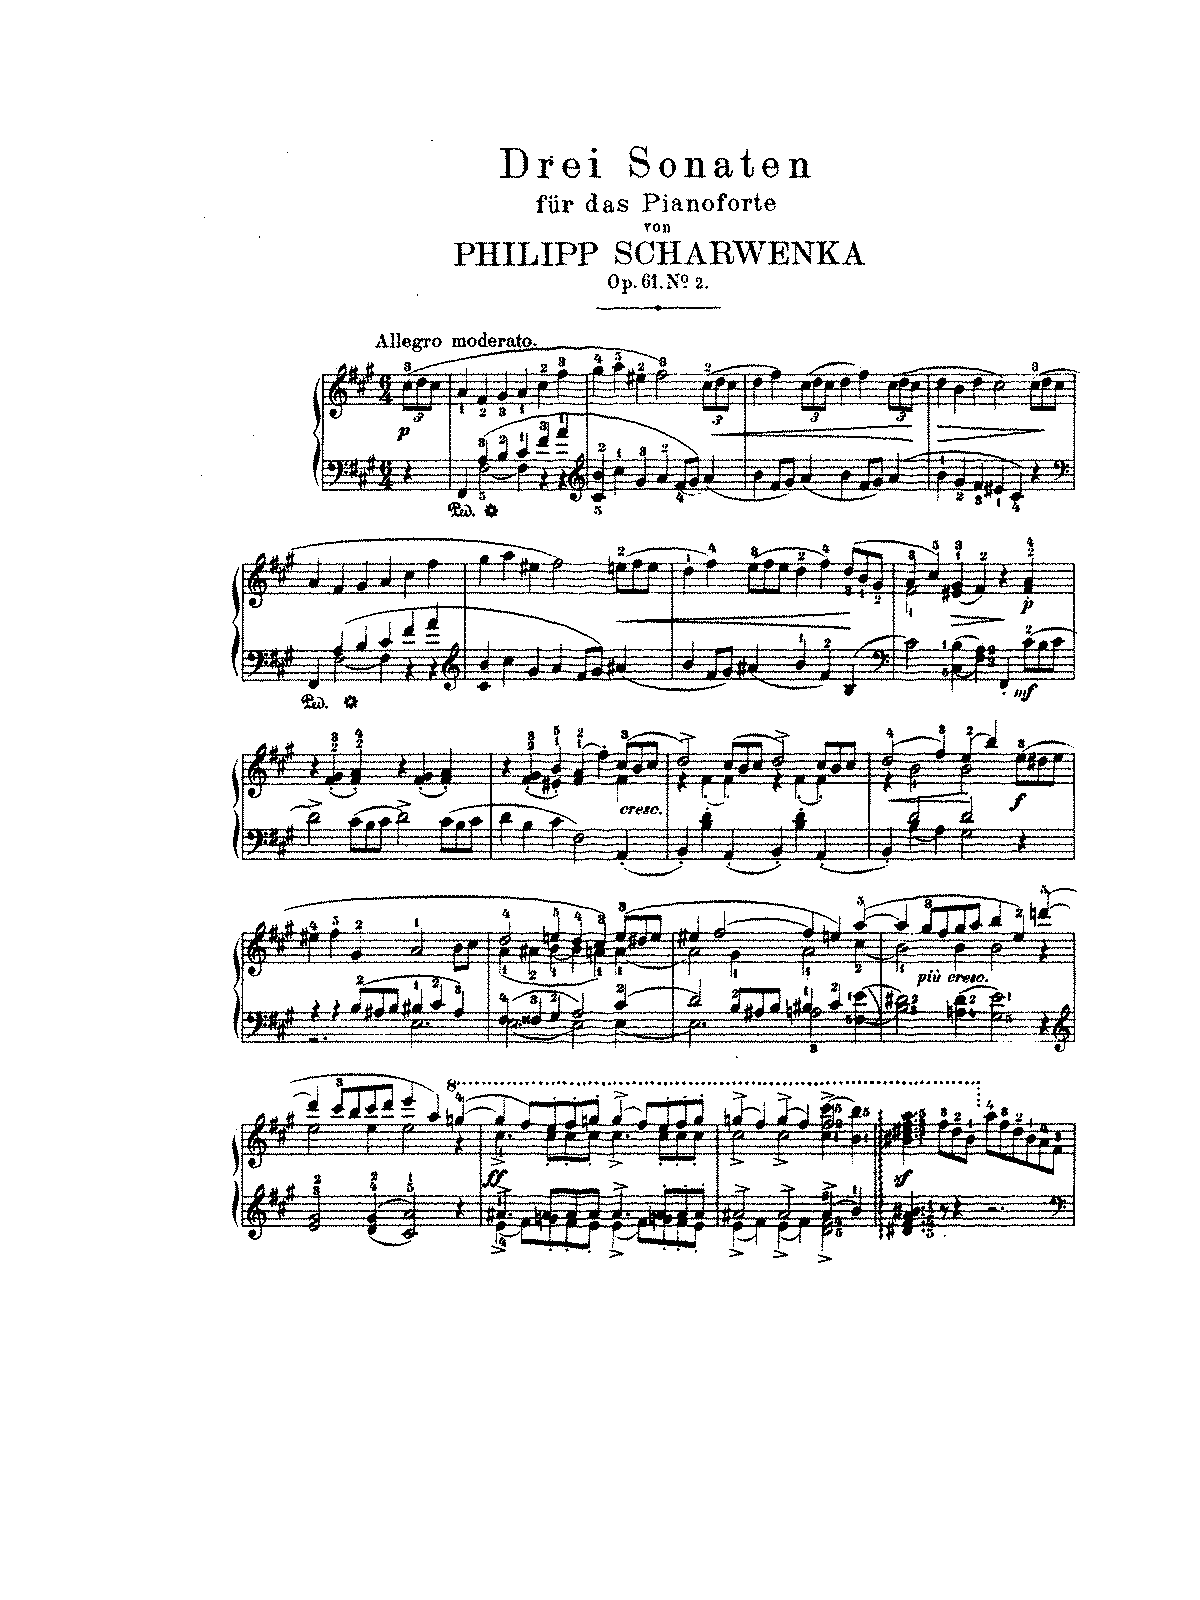 Scharwenka, P. - Op.61 no.2 - Sonata in F- minor.pdf